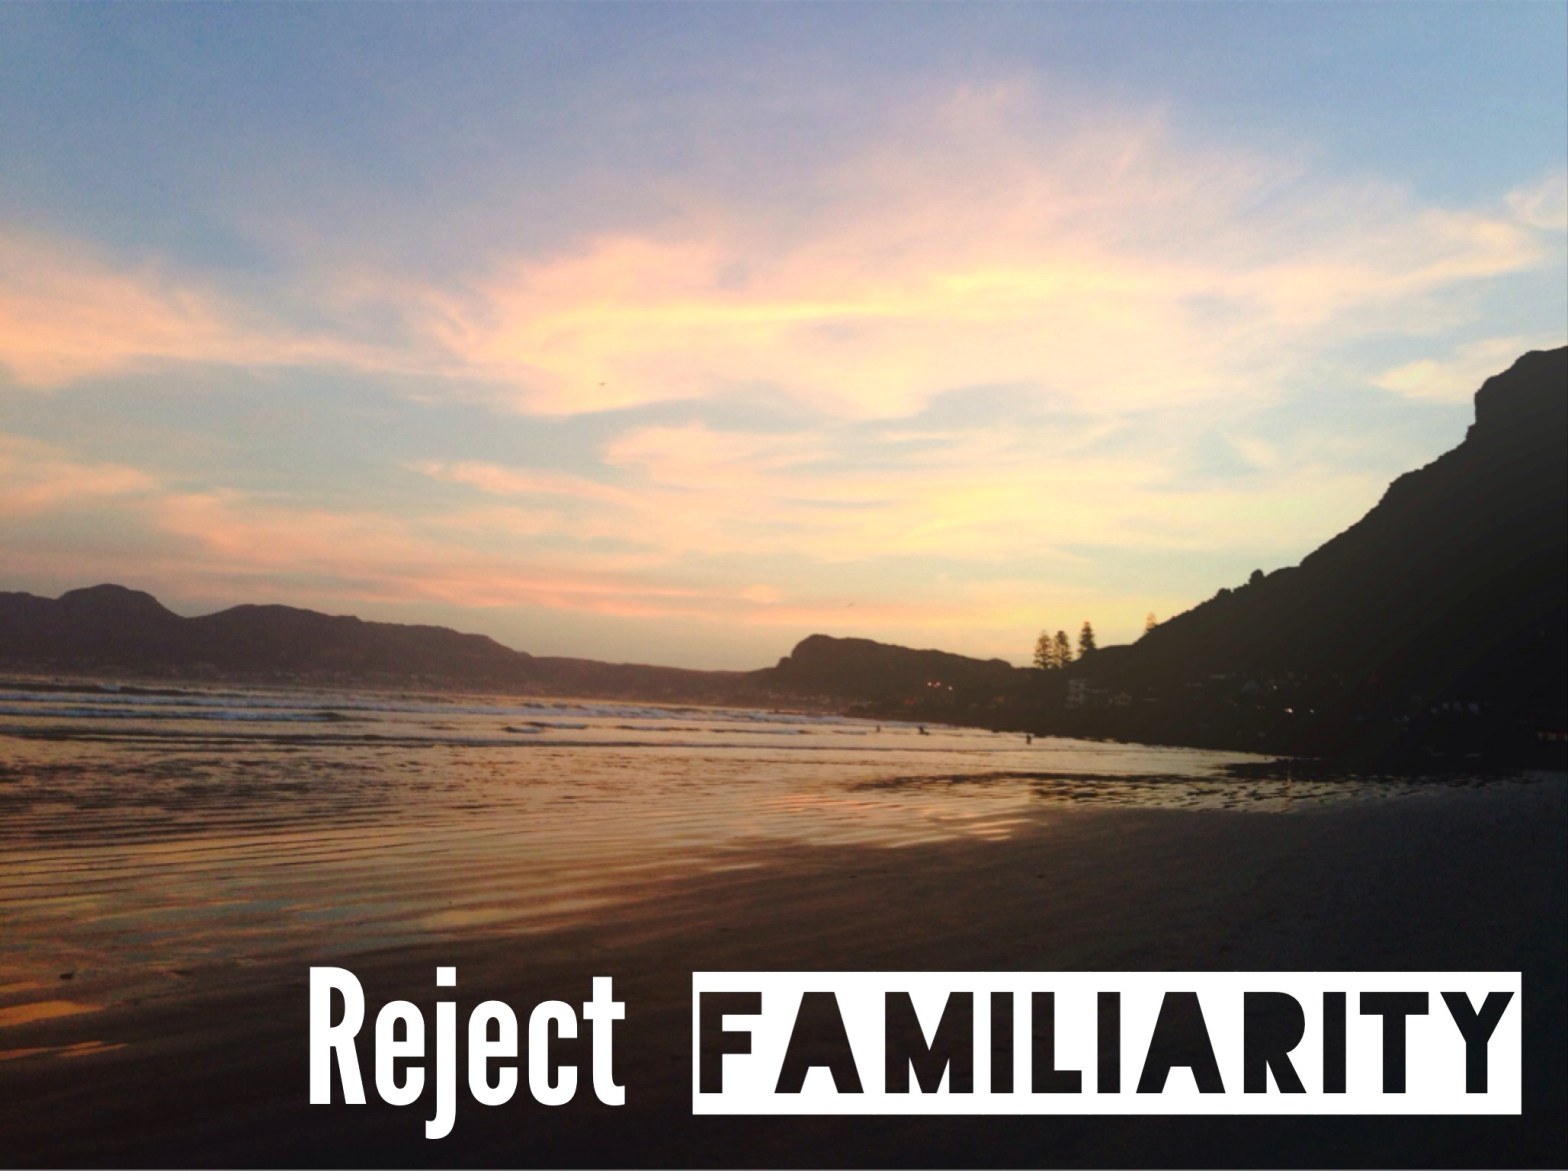 Why You Must Reject Familiarity